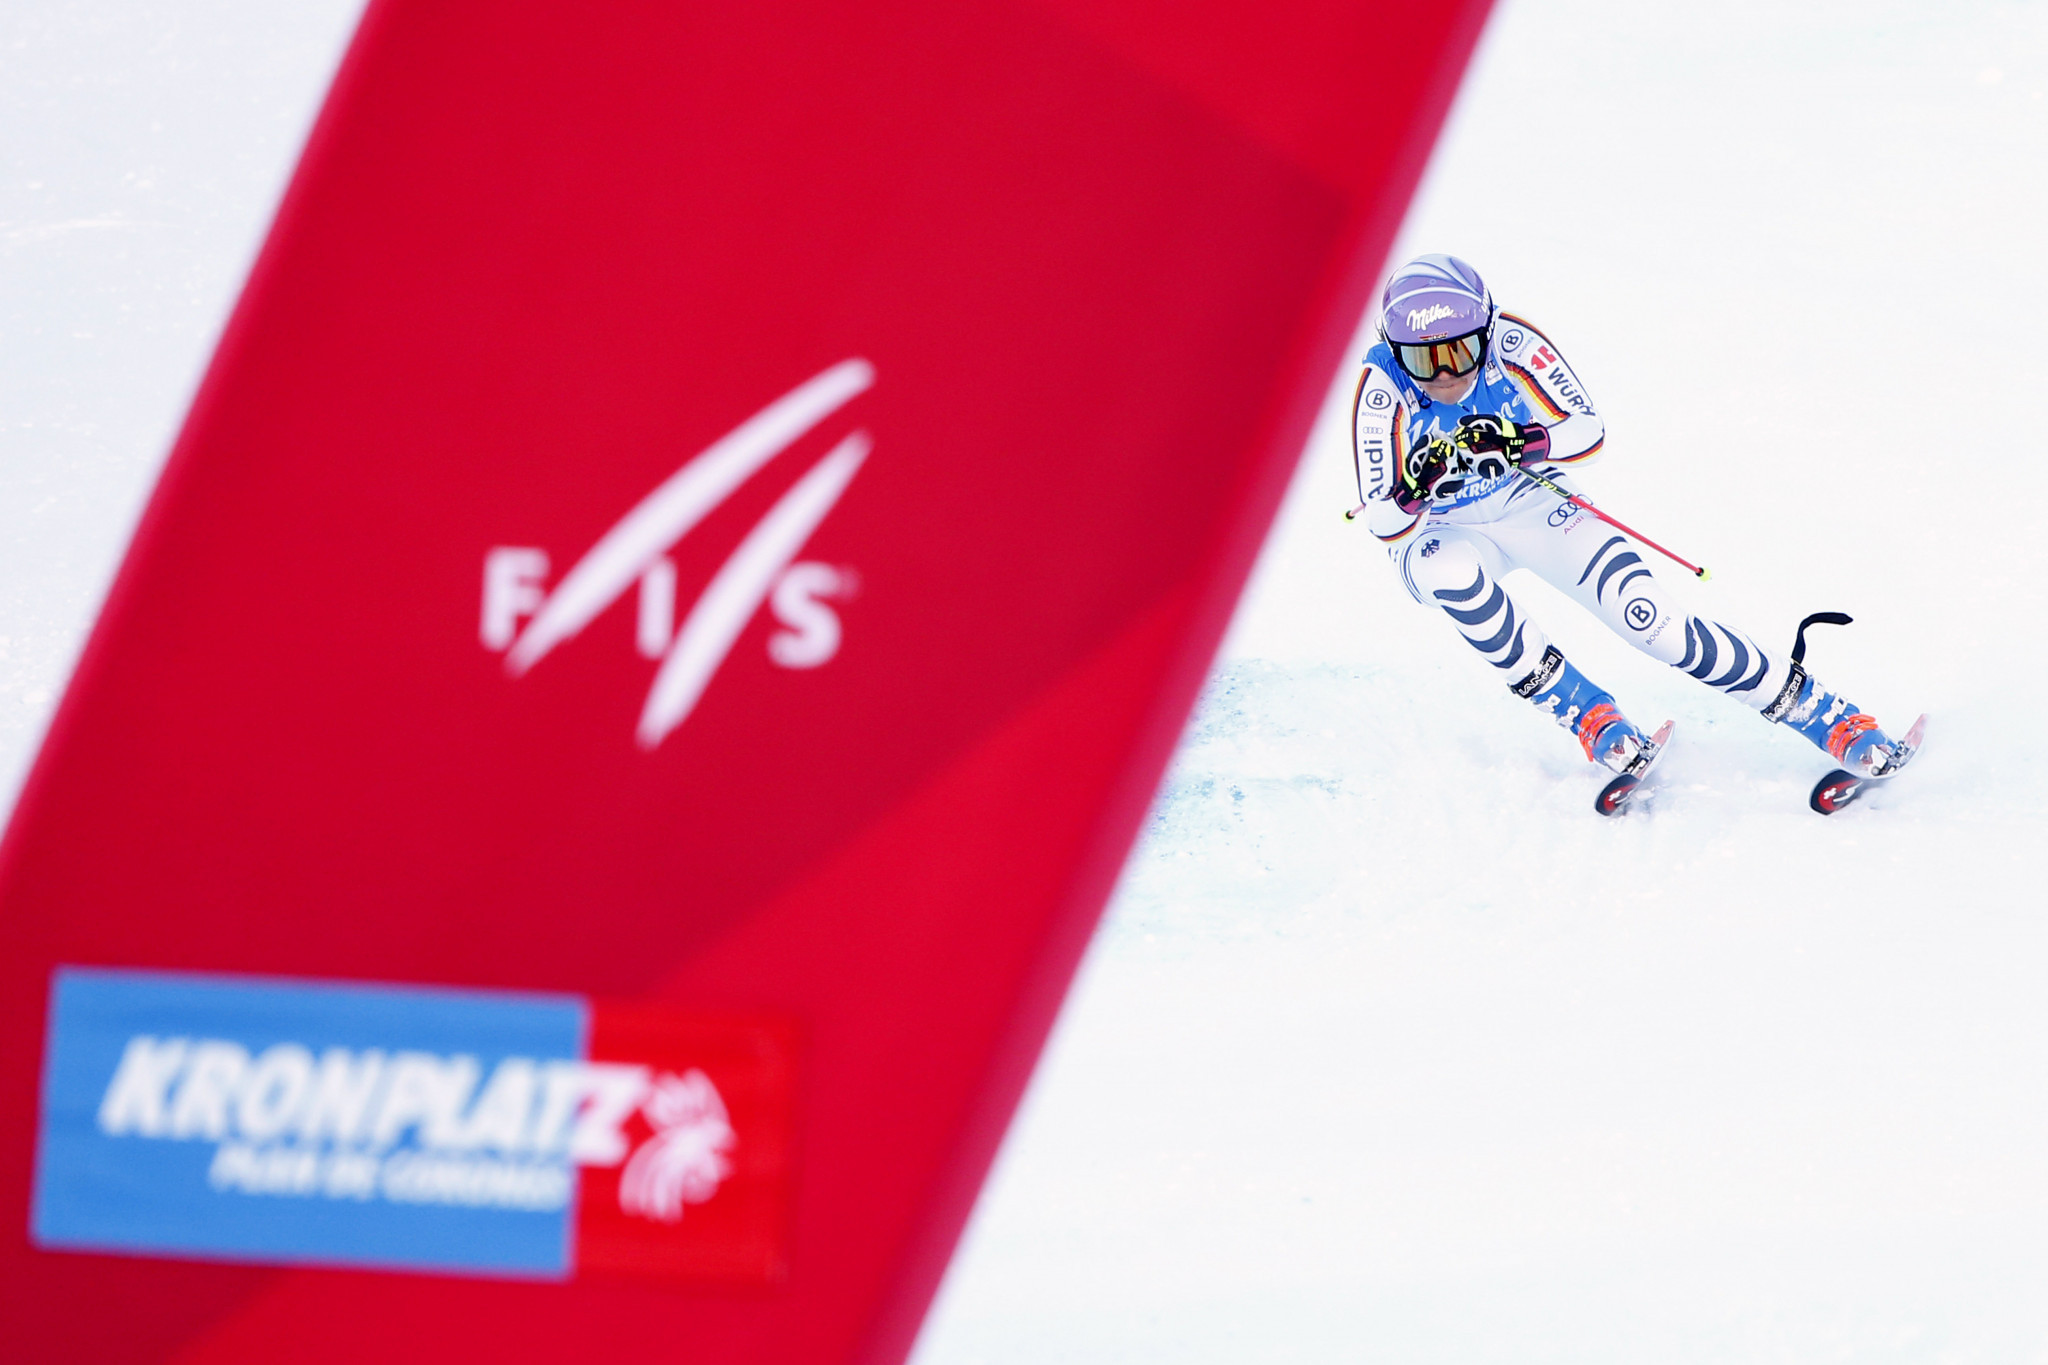 Viktoria Rebensburg clinched victory today in Kronplatz ©Getty Images